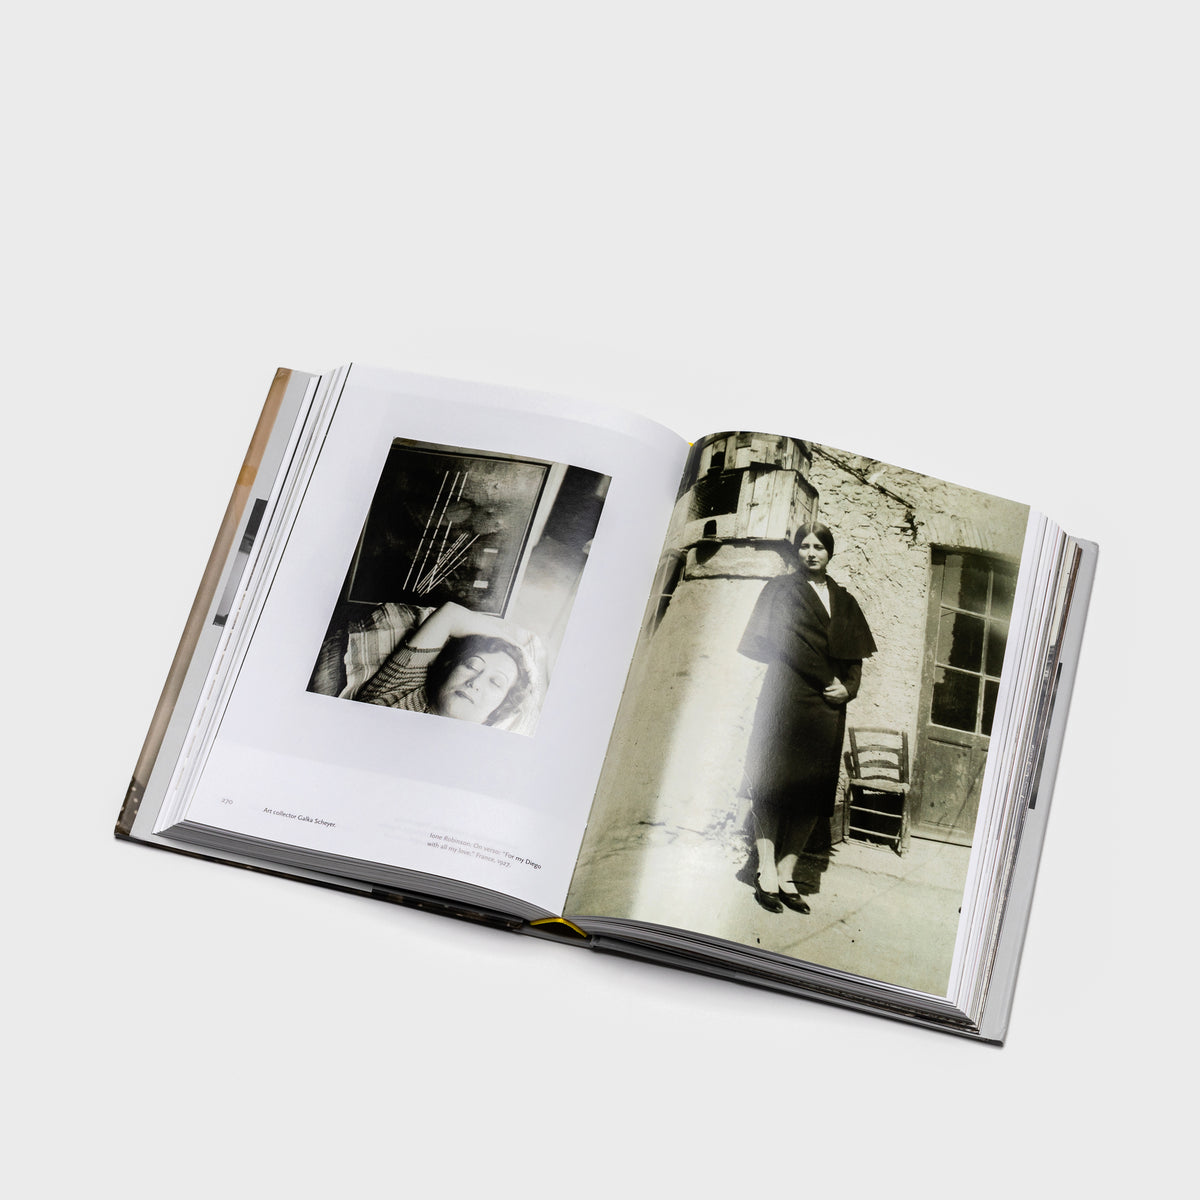 Load image into Gallery viewer, Frida Kahlo - Her Photos - Books – Shoppe Amber Interiors